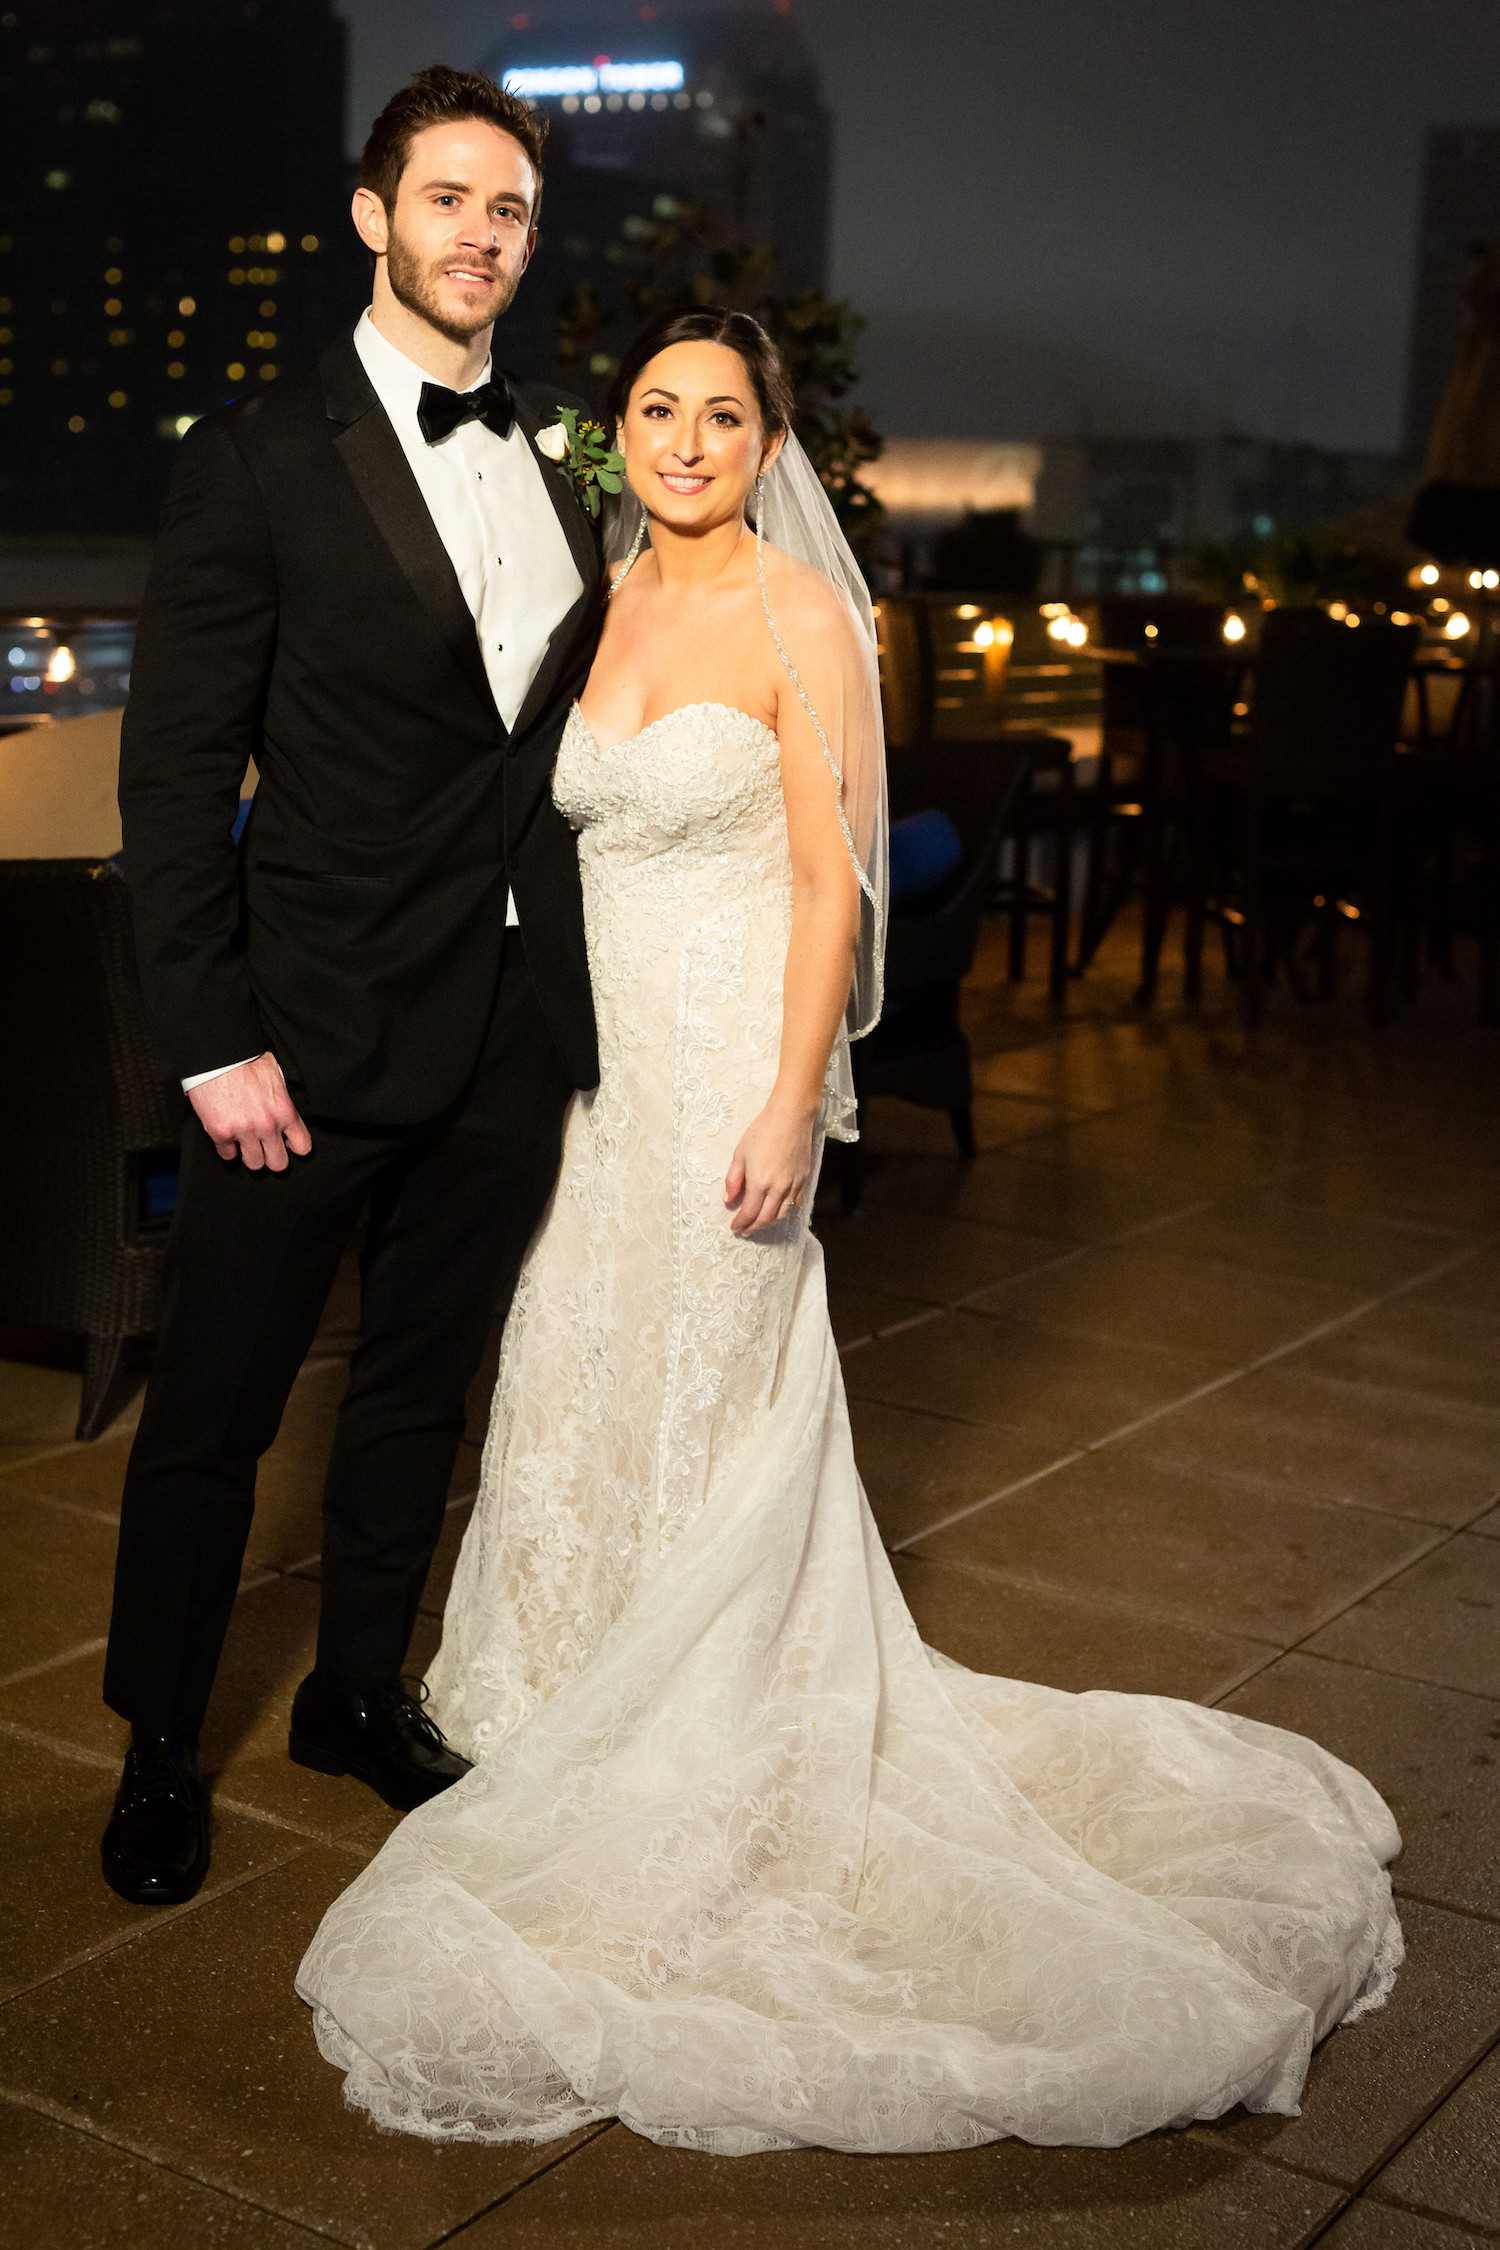 Brett and Olivia of Married At First Sight Season 11 getting married